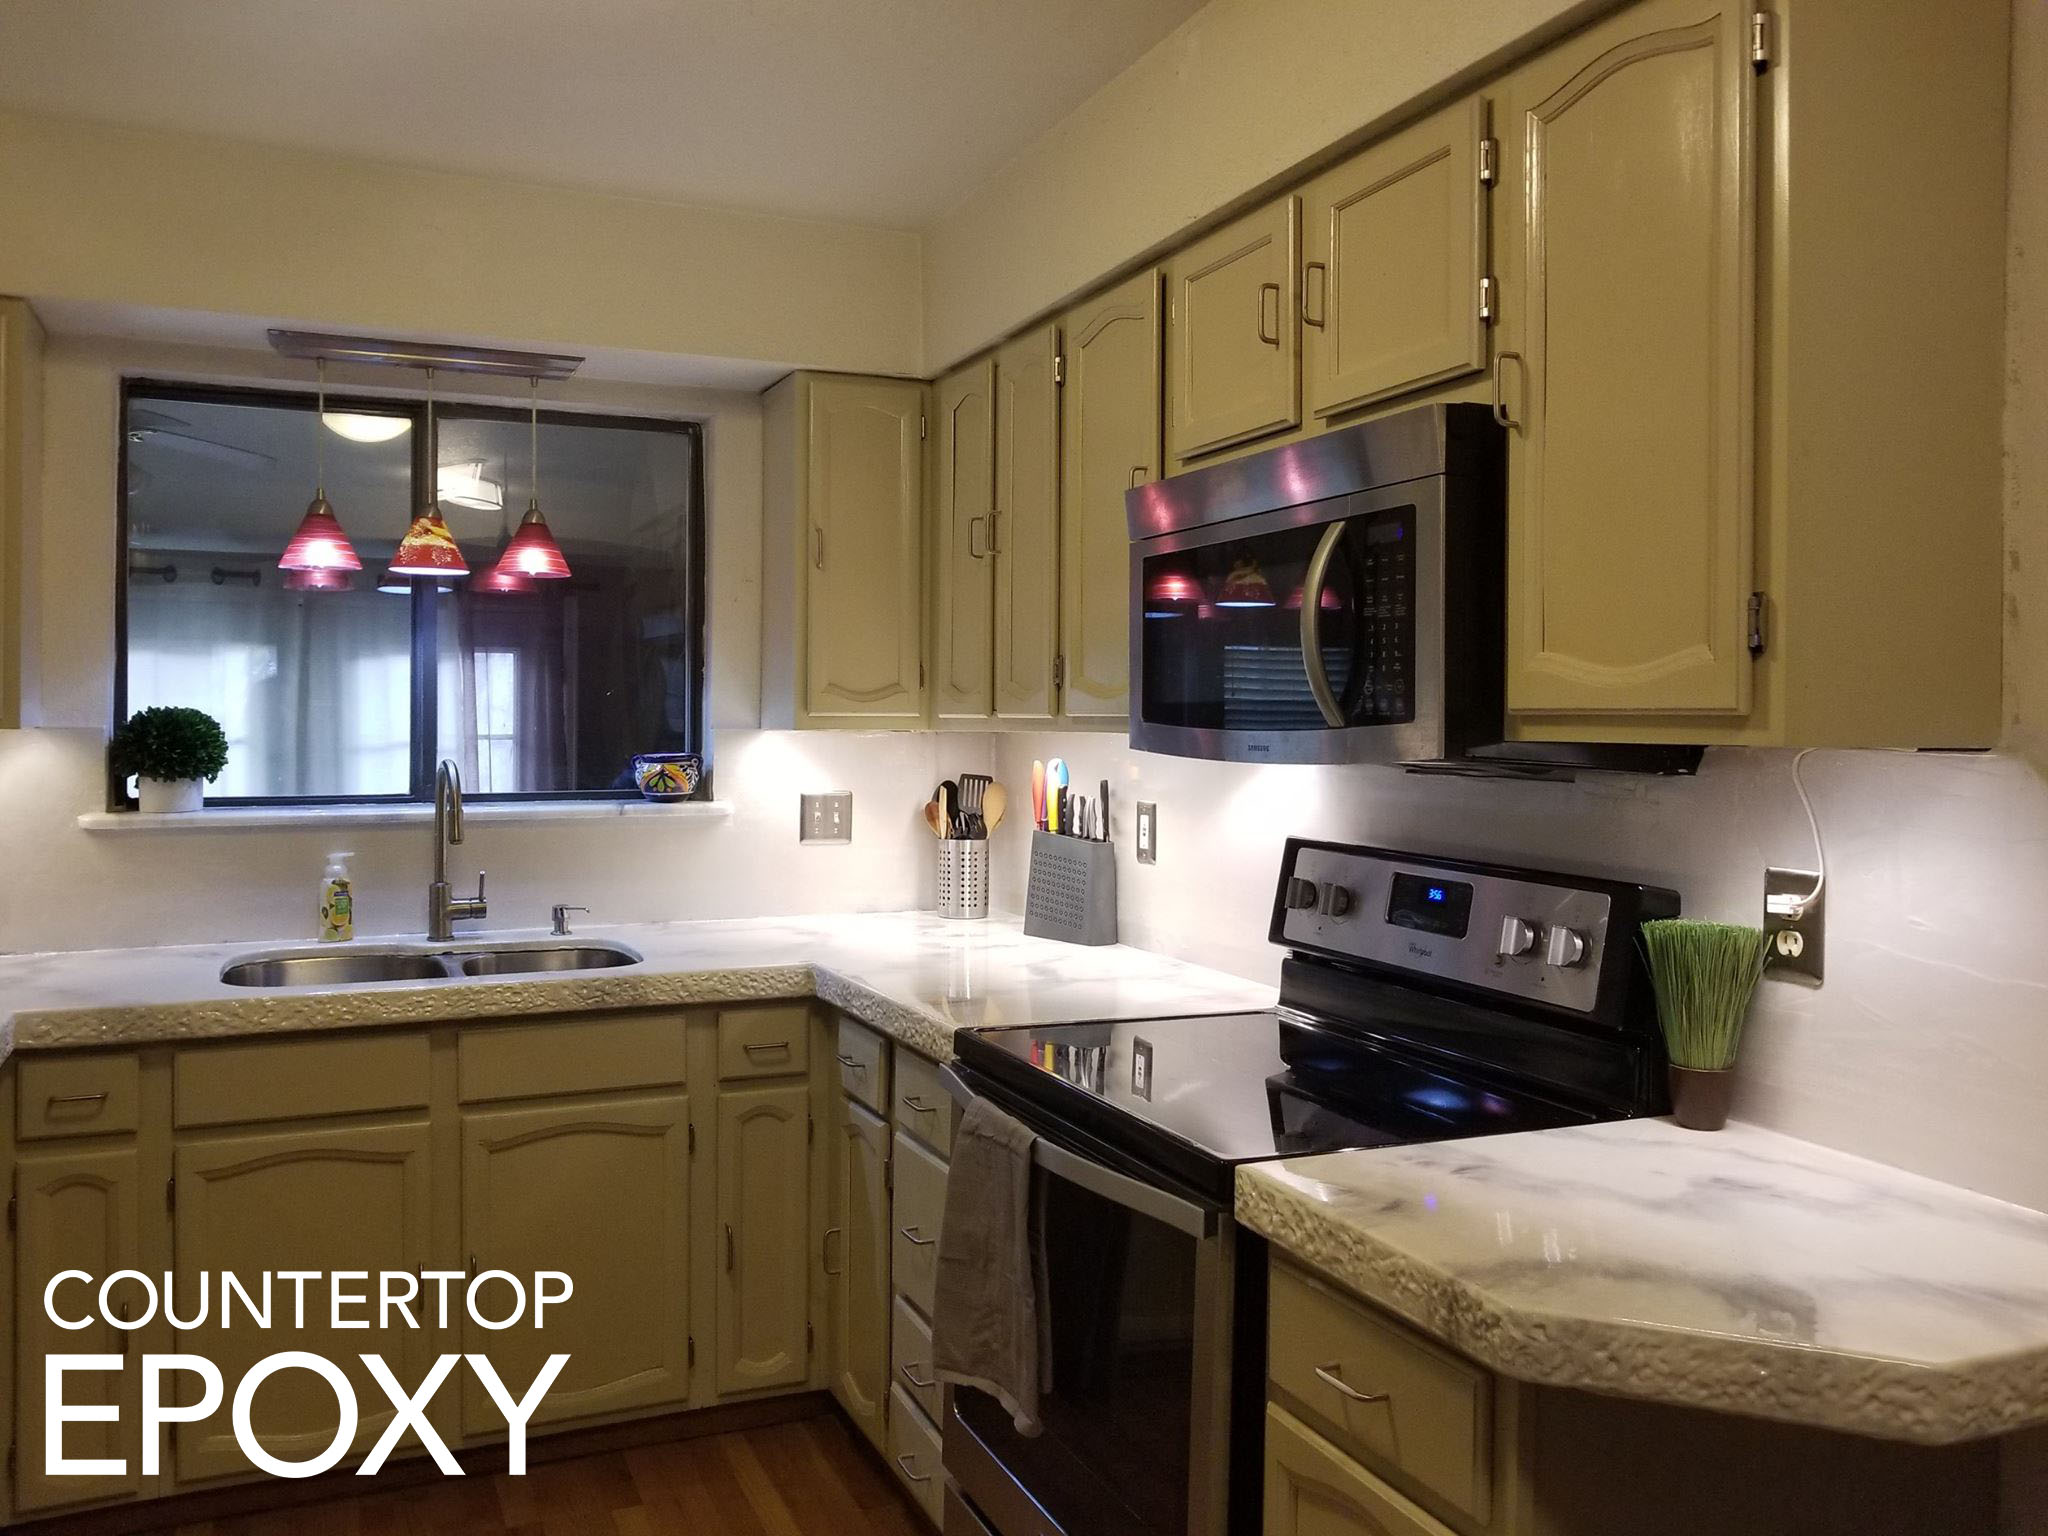 Countertop Epoxy Com 11 Diy Ideas To Update Your Ugly Rental Kitchen Counter